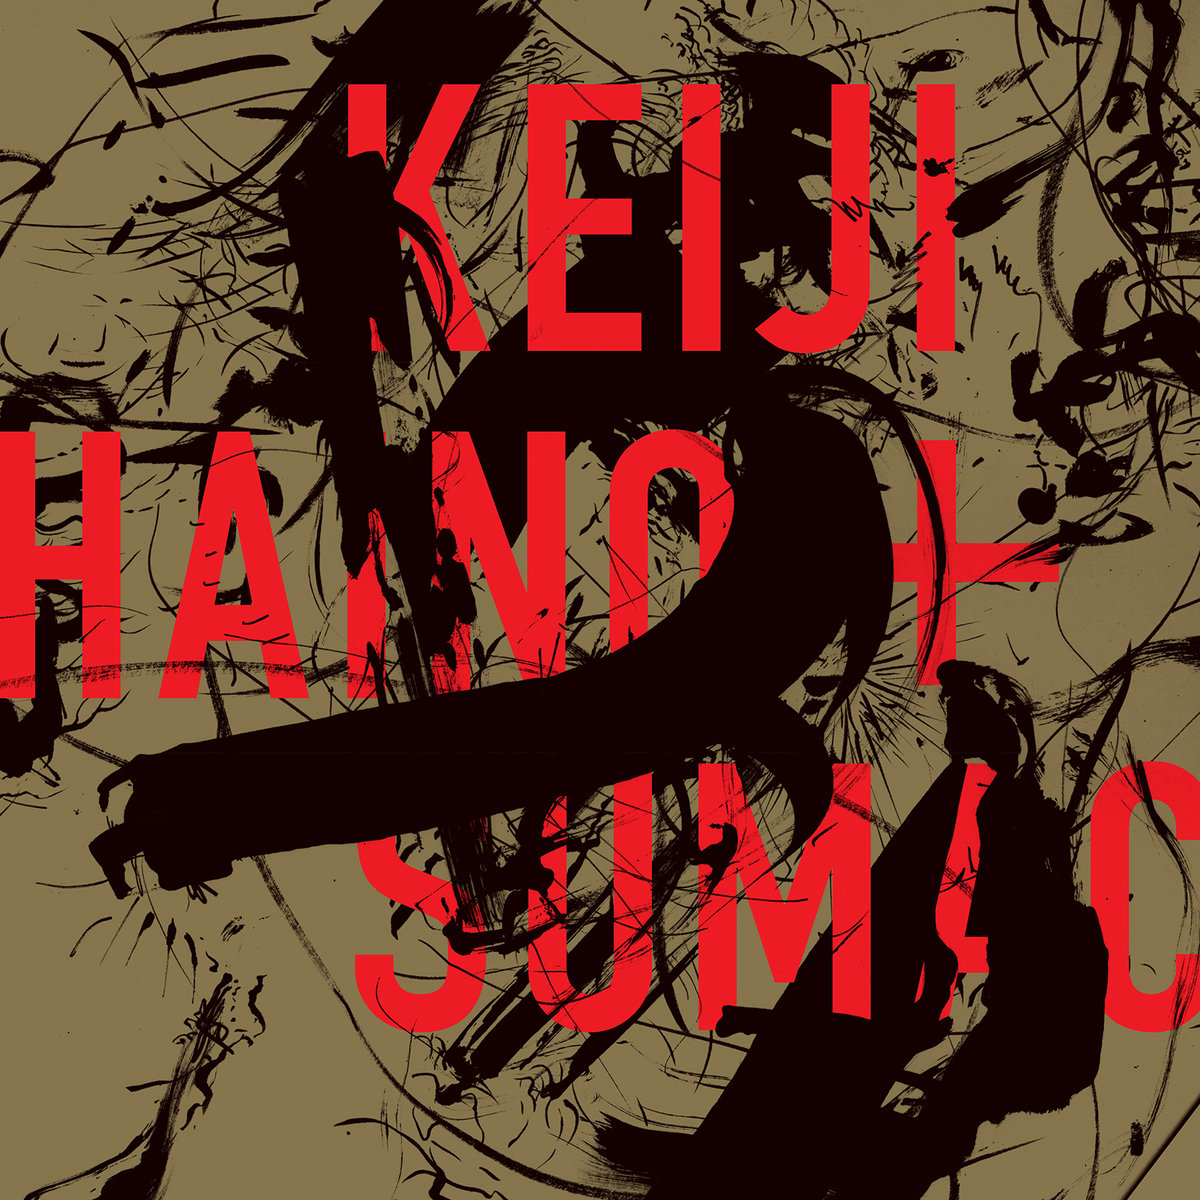 Keiji Haino Sumac American Dollar Bill review